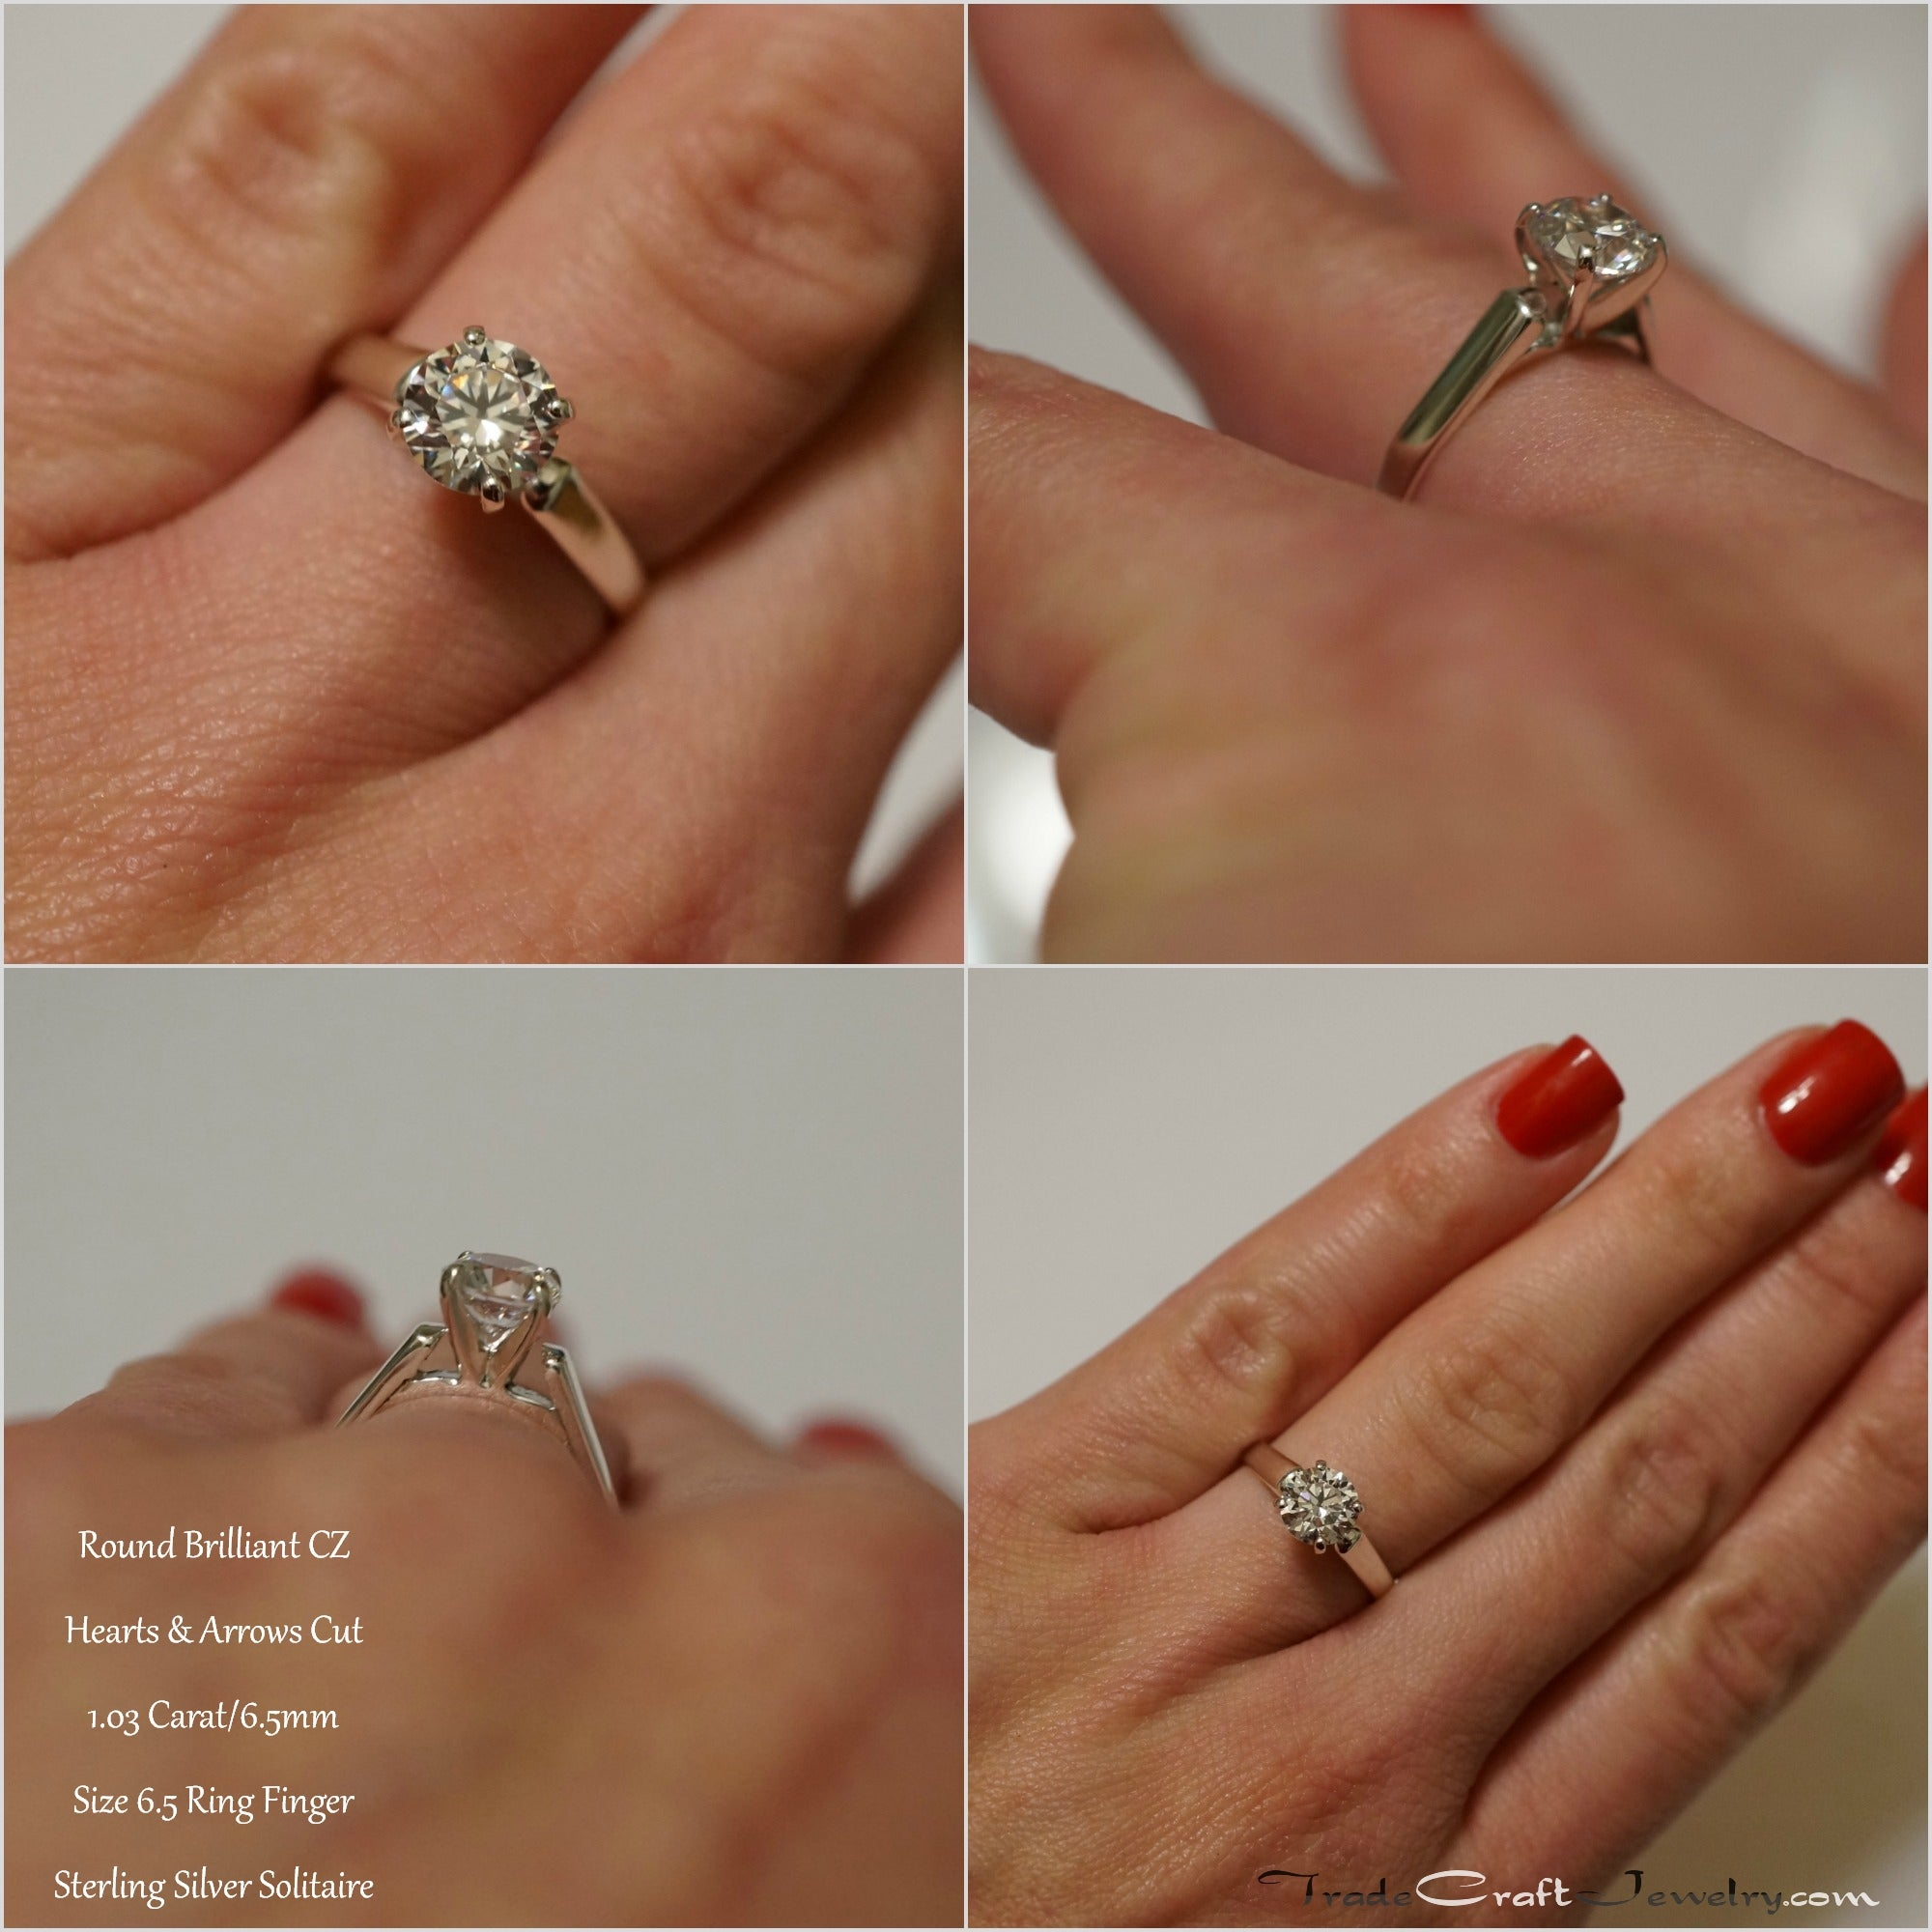 ring size shots with hand seven carat jewelry round tradecraft news brilliant this cushion dime finger diamond shows blogs stone us picture comparisons